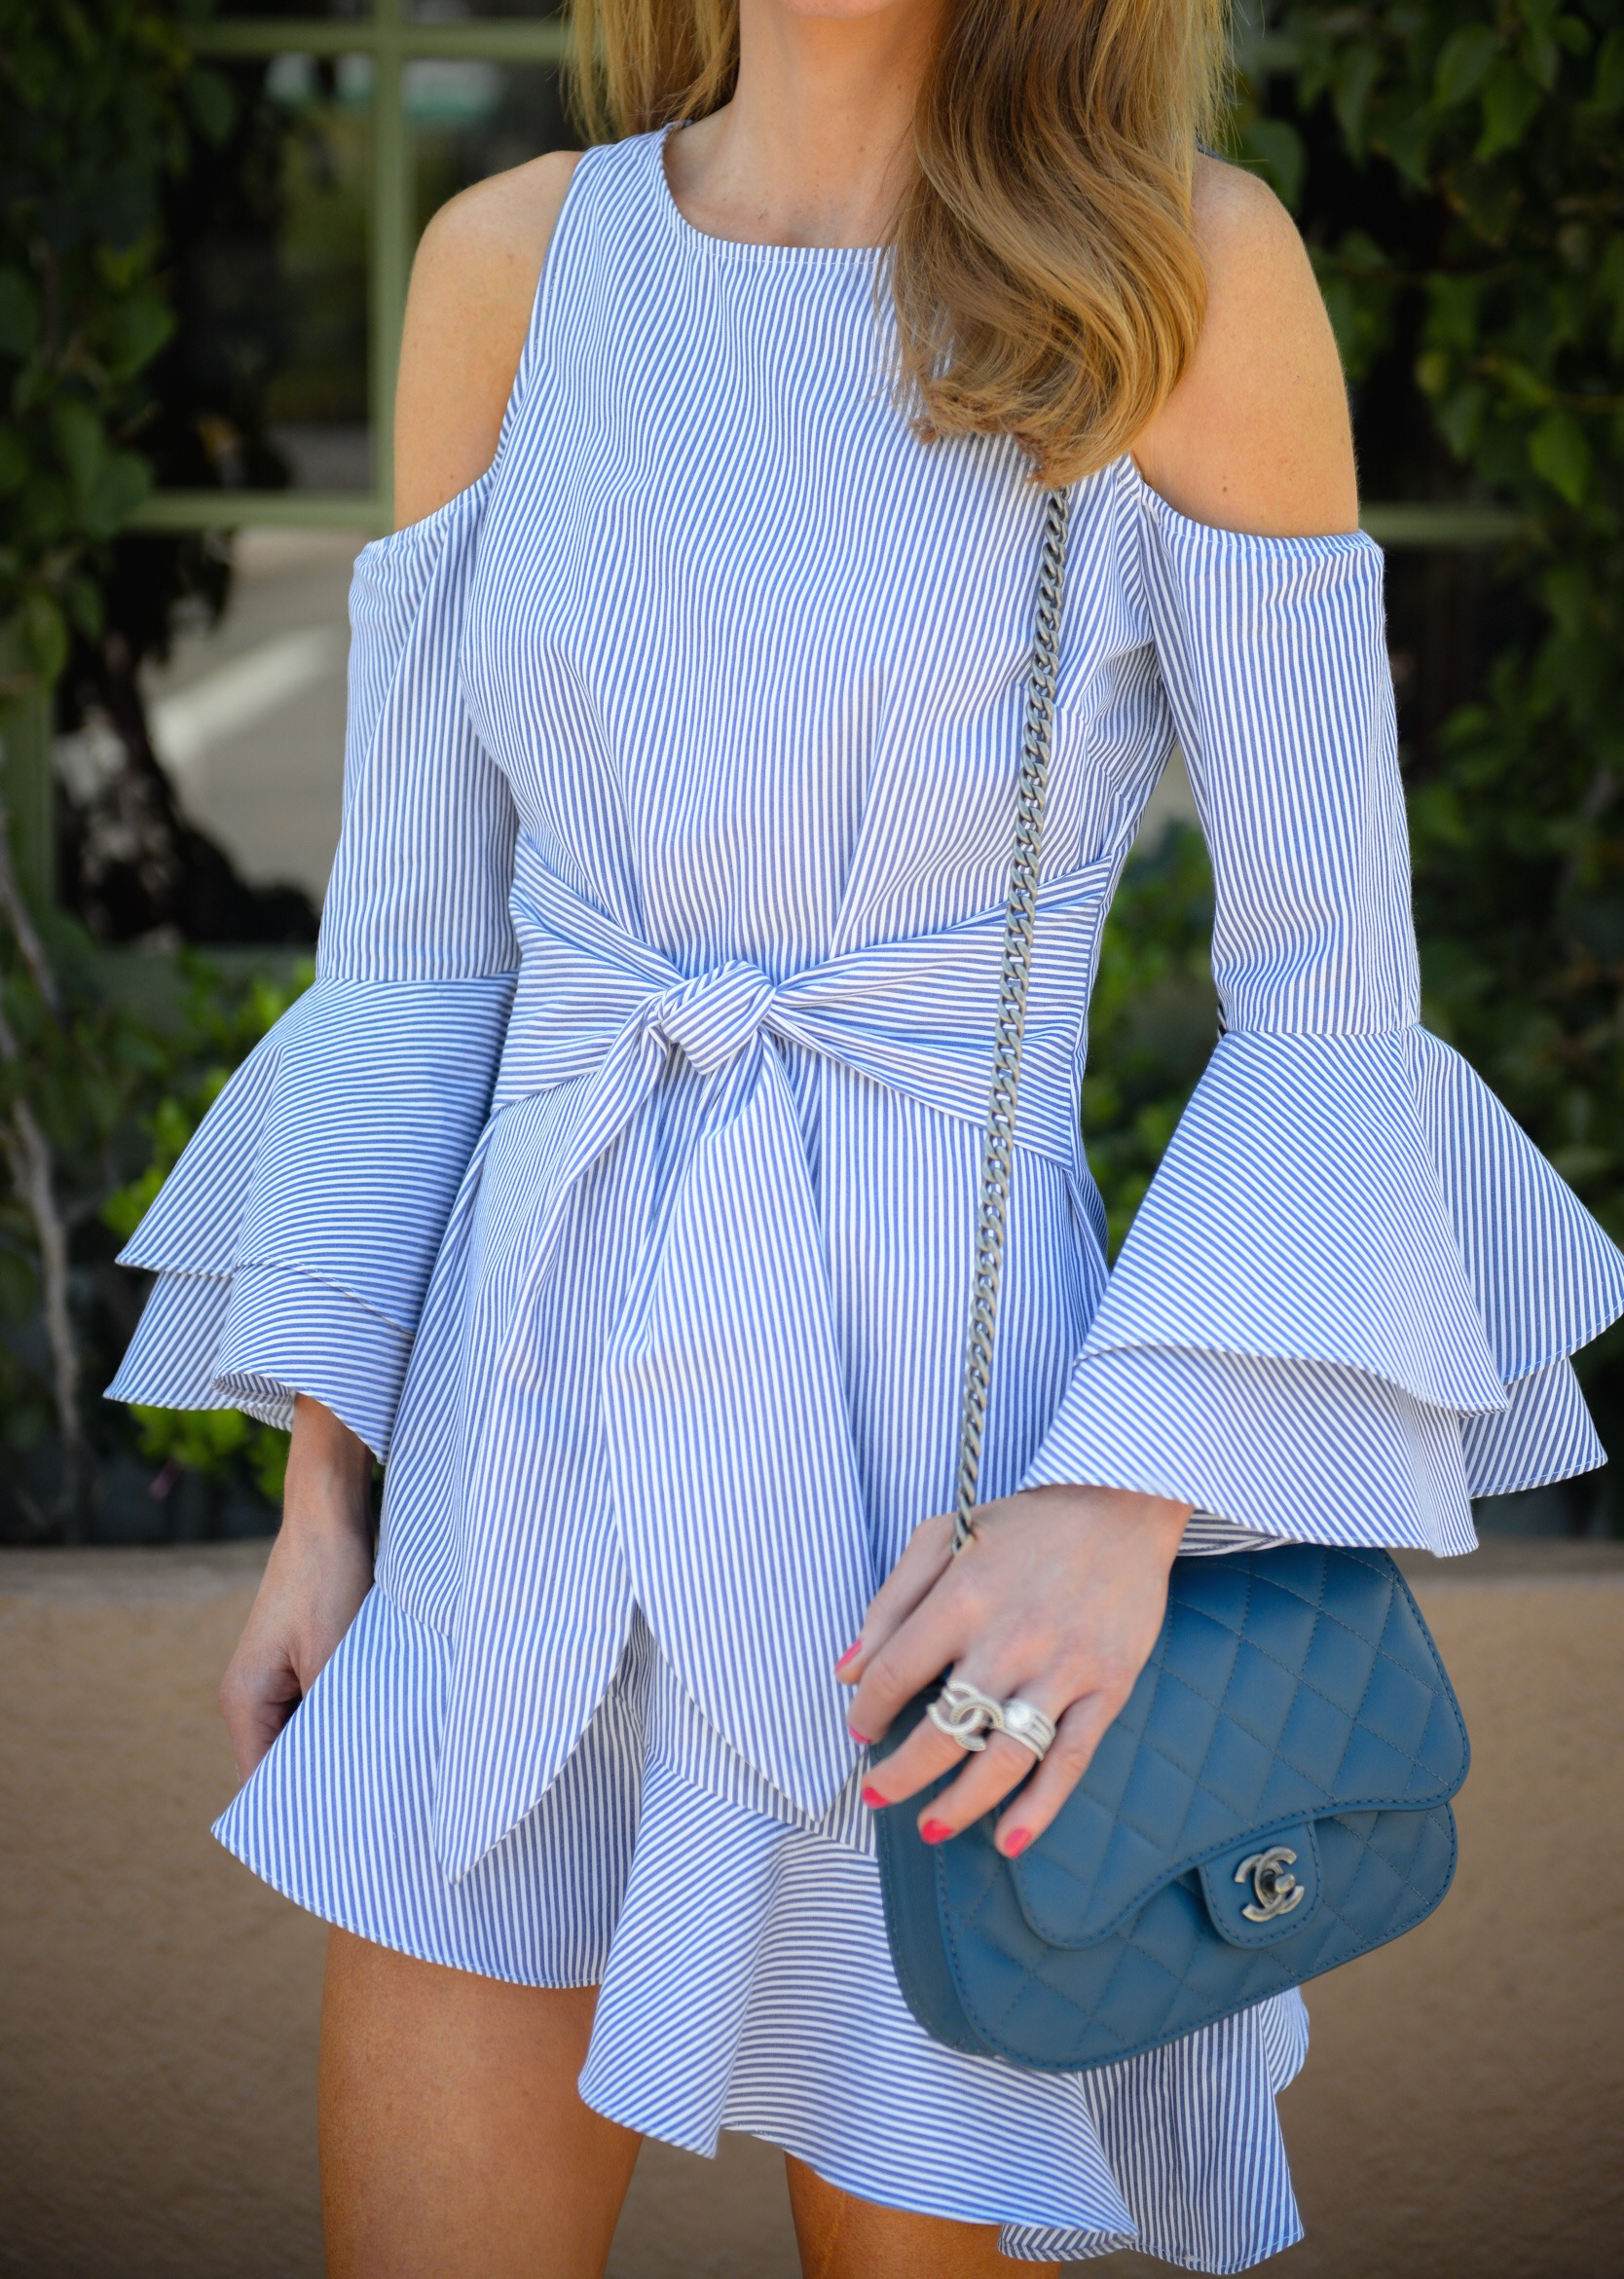 fb82320218b51 Blue and white stripes are essential for warm temps and I found so many  cute dresses that I linked below. Any of these would be such fun 4th of  July options ...